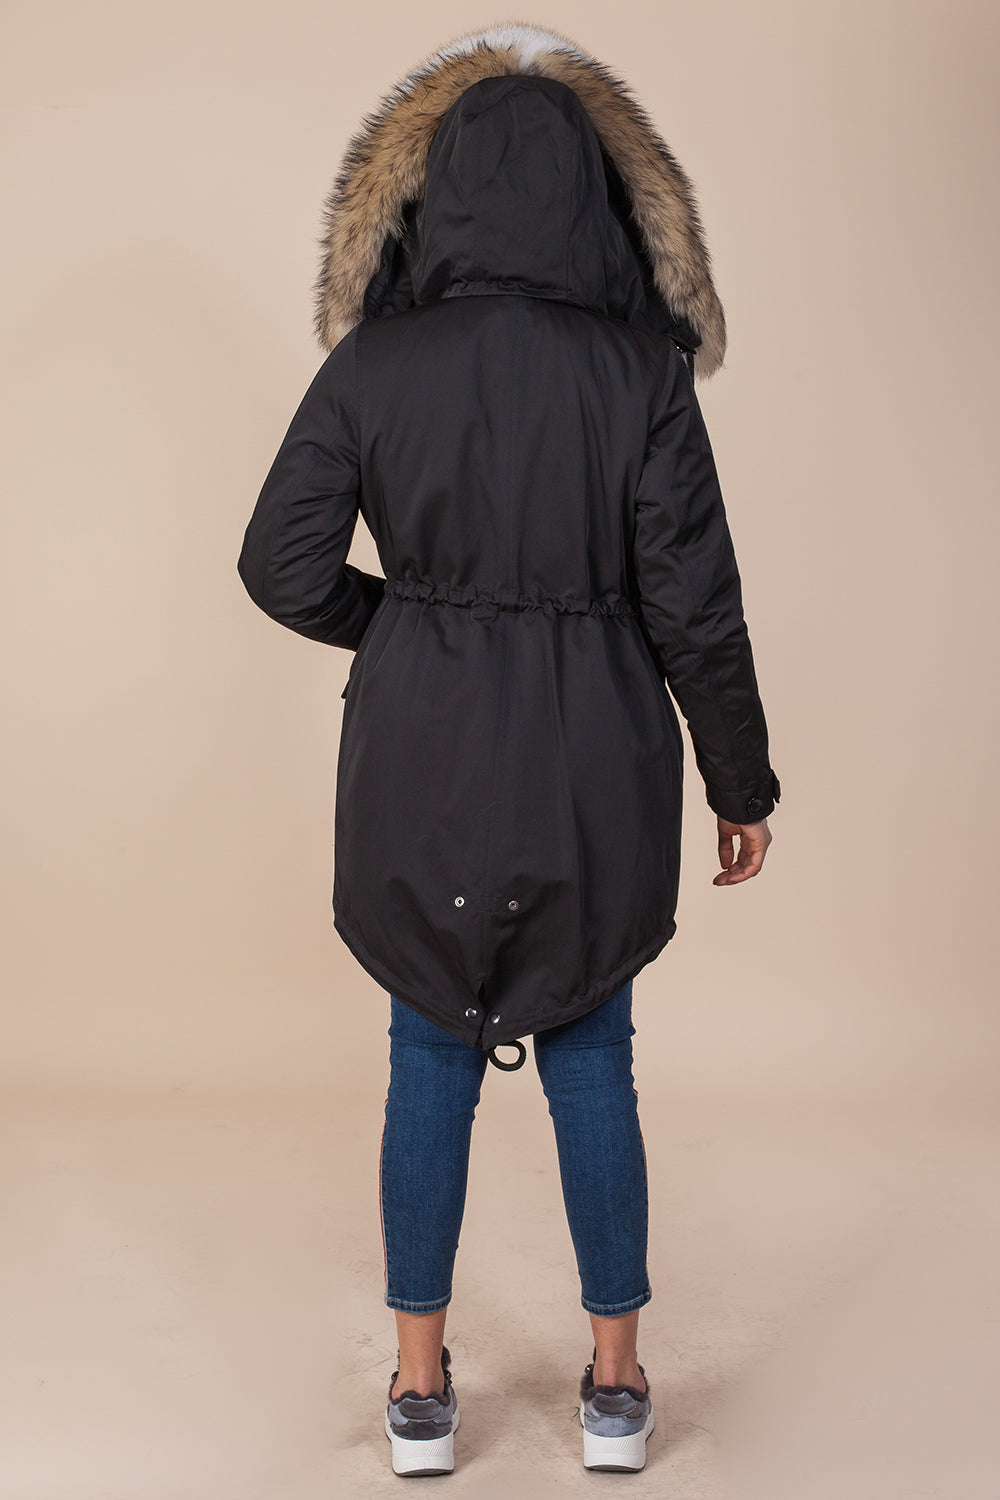 Black Midi Parka Main Fabric is Waterproof / Raincoat Fabric With Finnraccoon Mixed Blue Fox